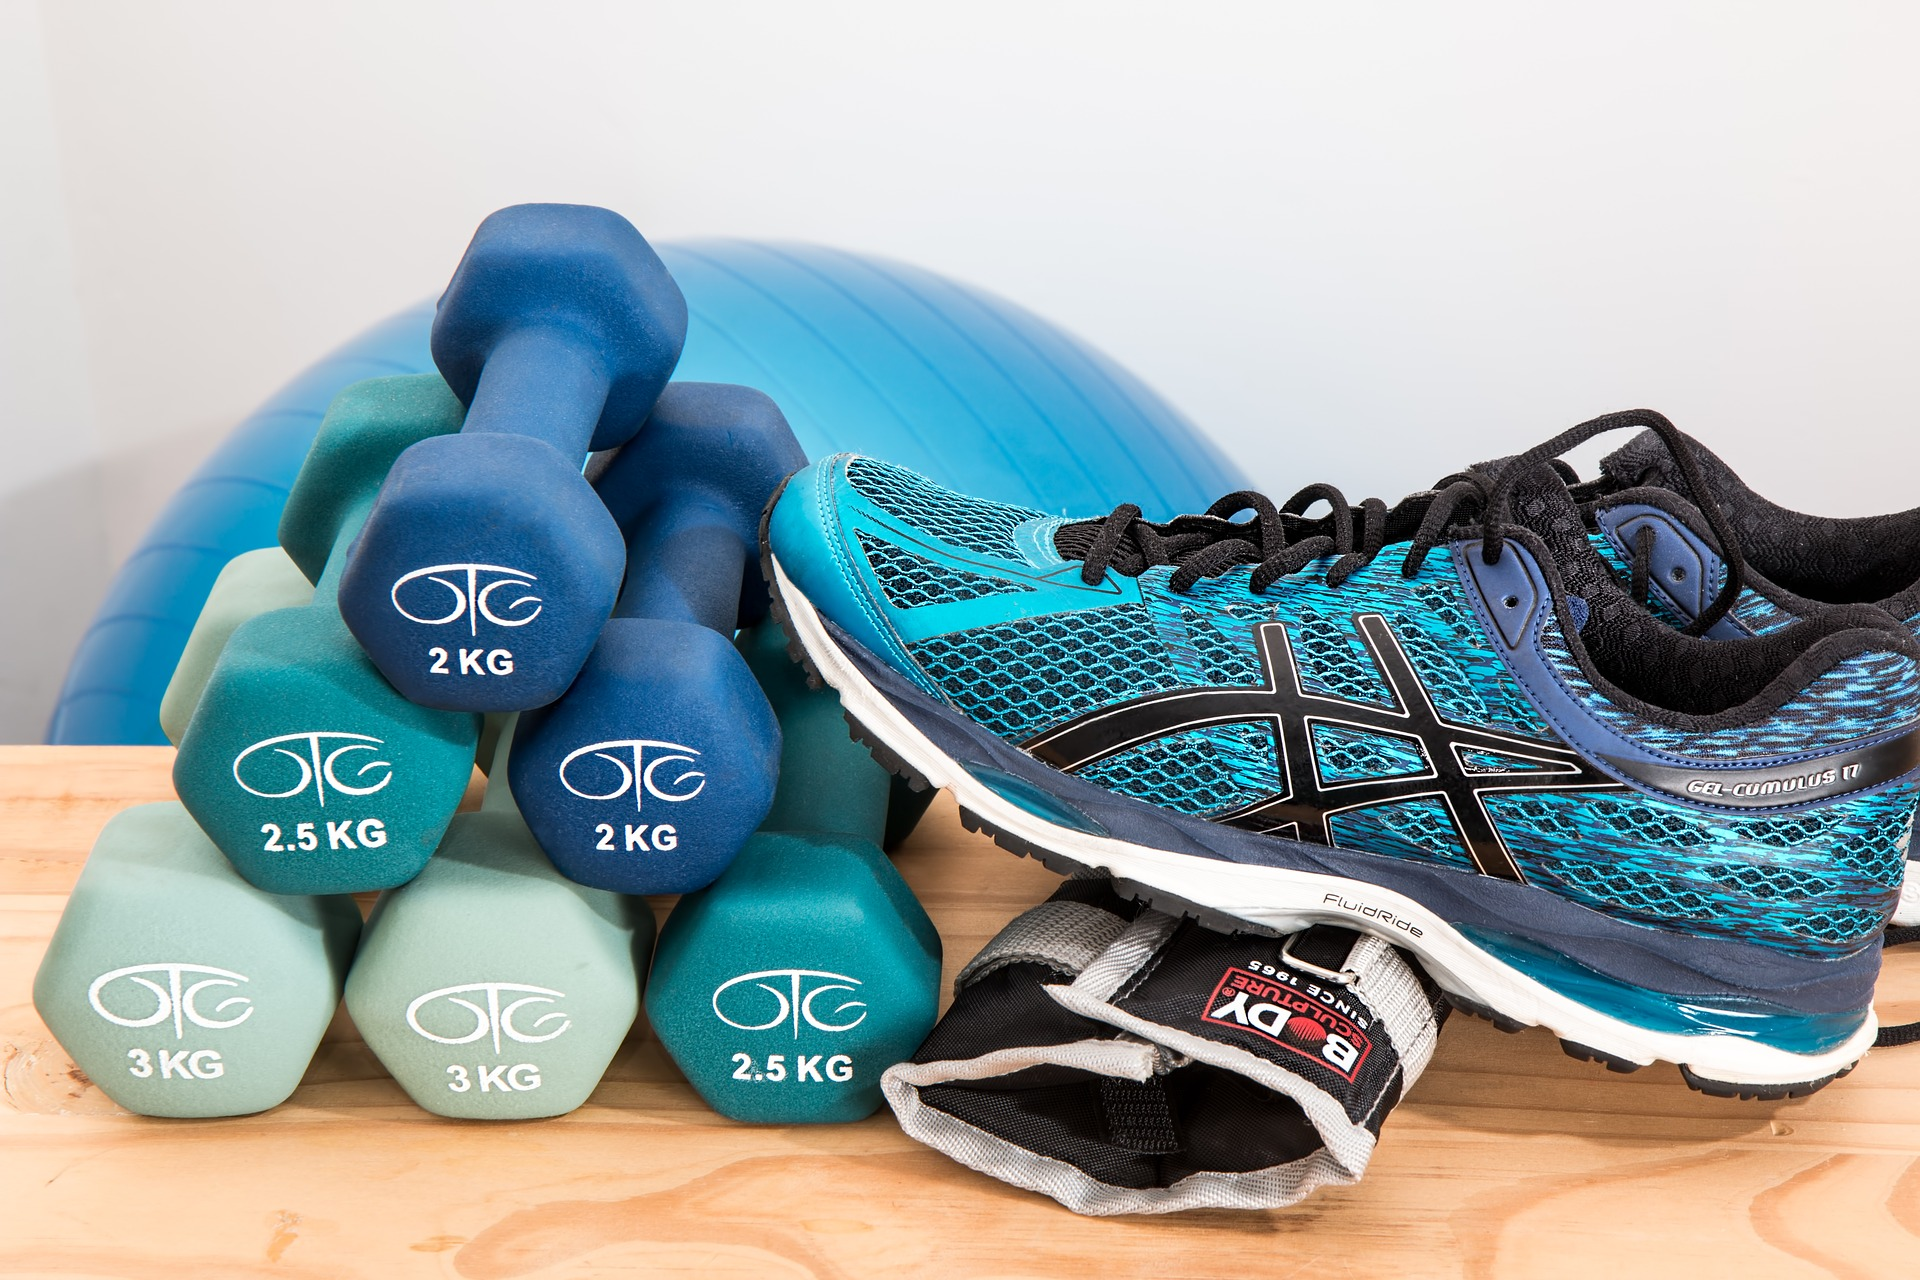 Look out for special discount offers and trial memberships at gyms